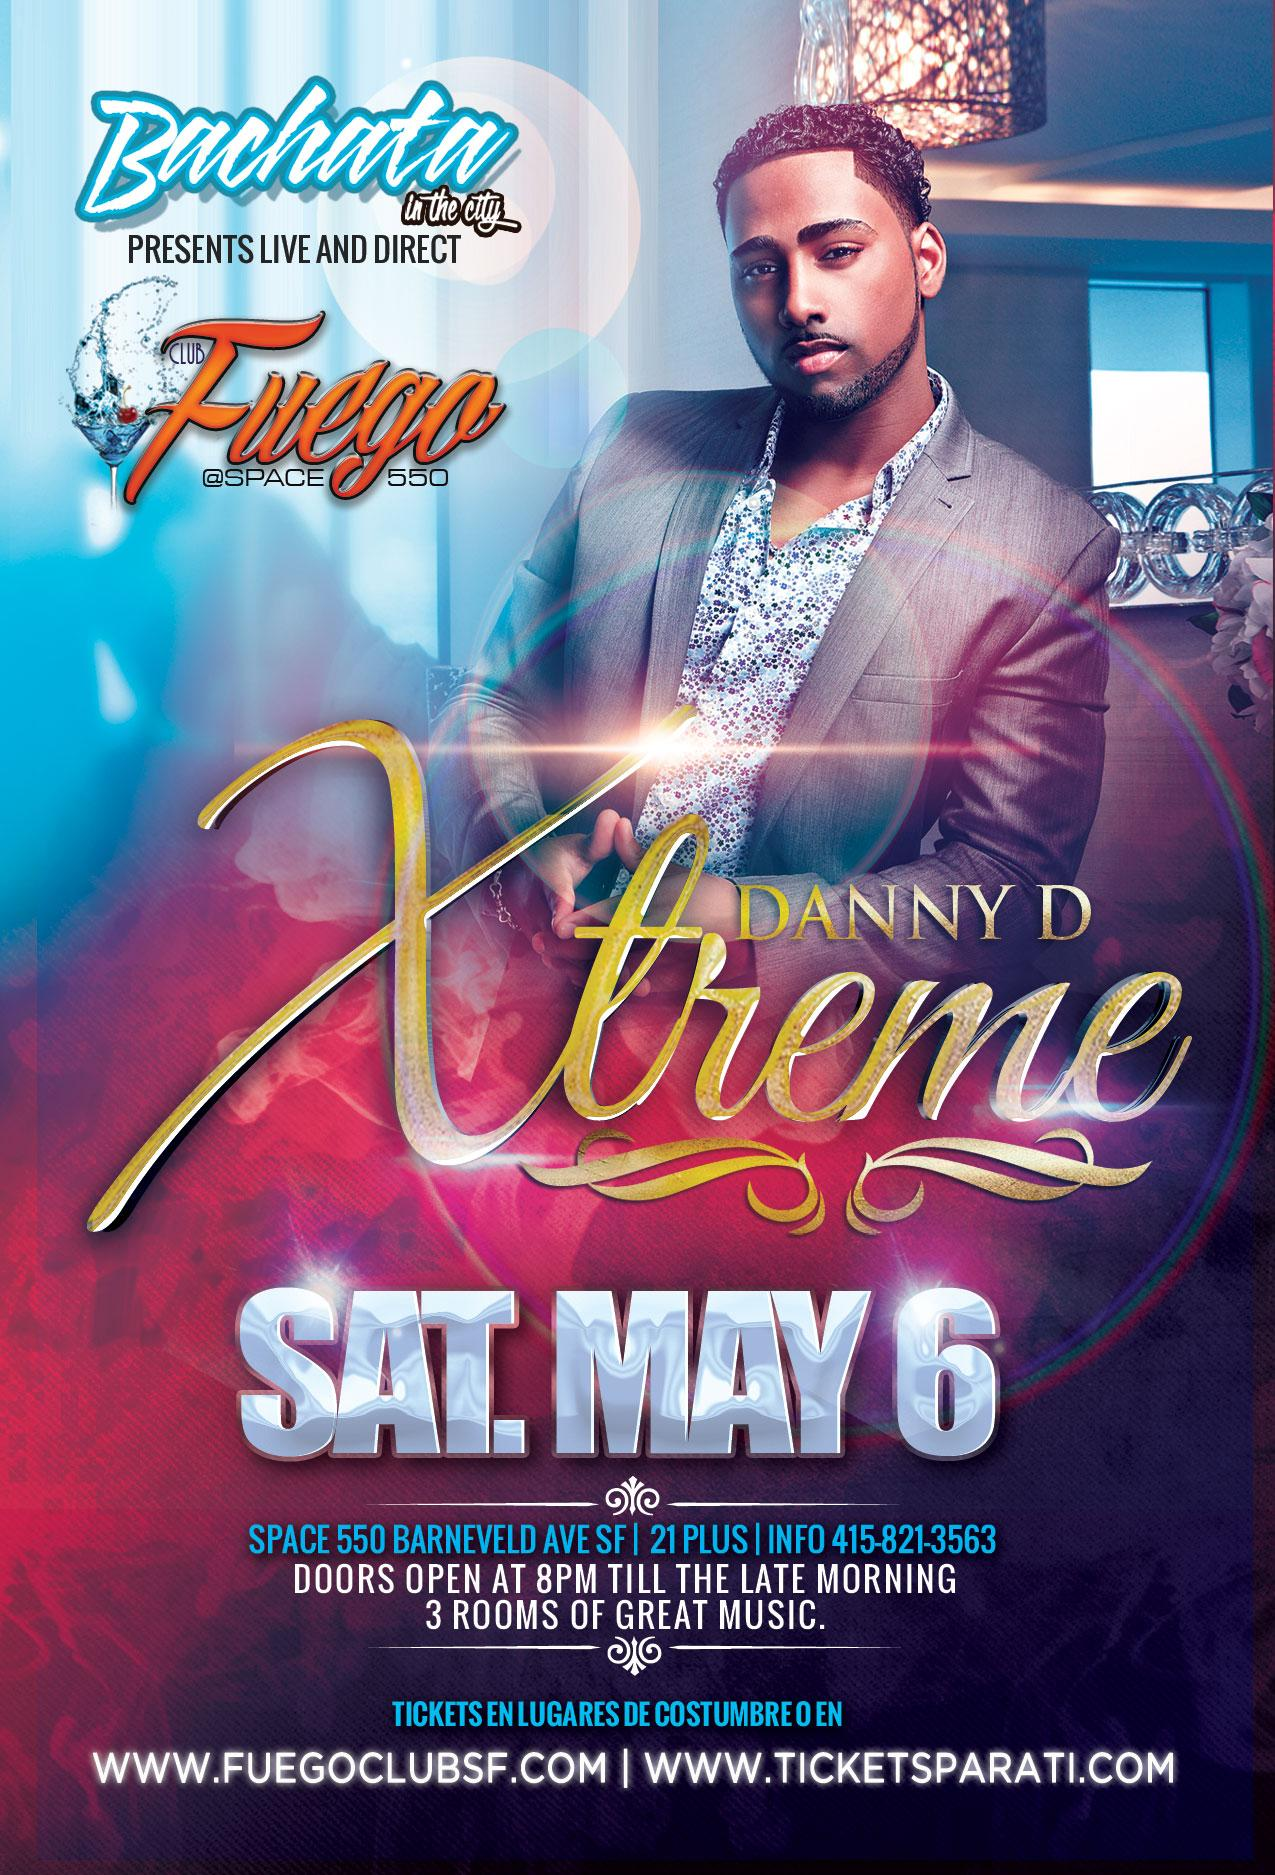 XTREME LIVE Bachata In the City Space 550